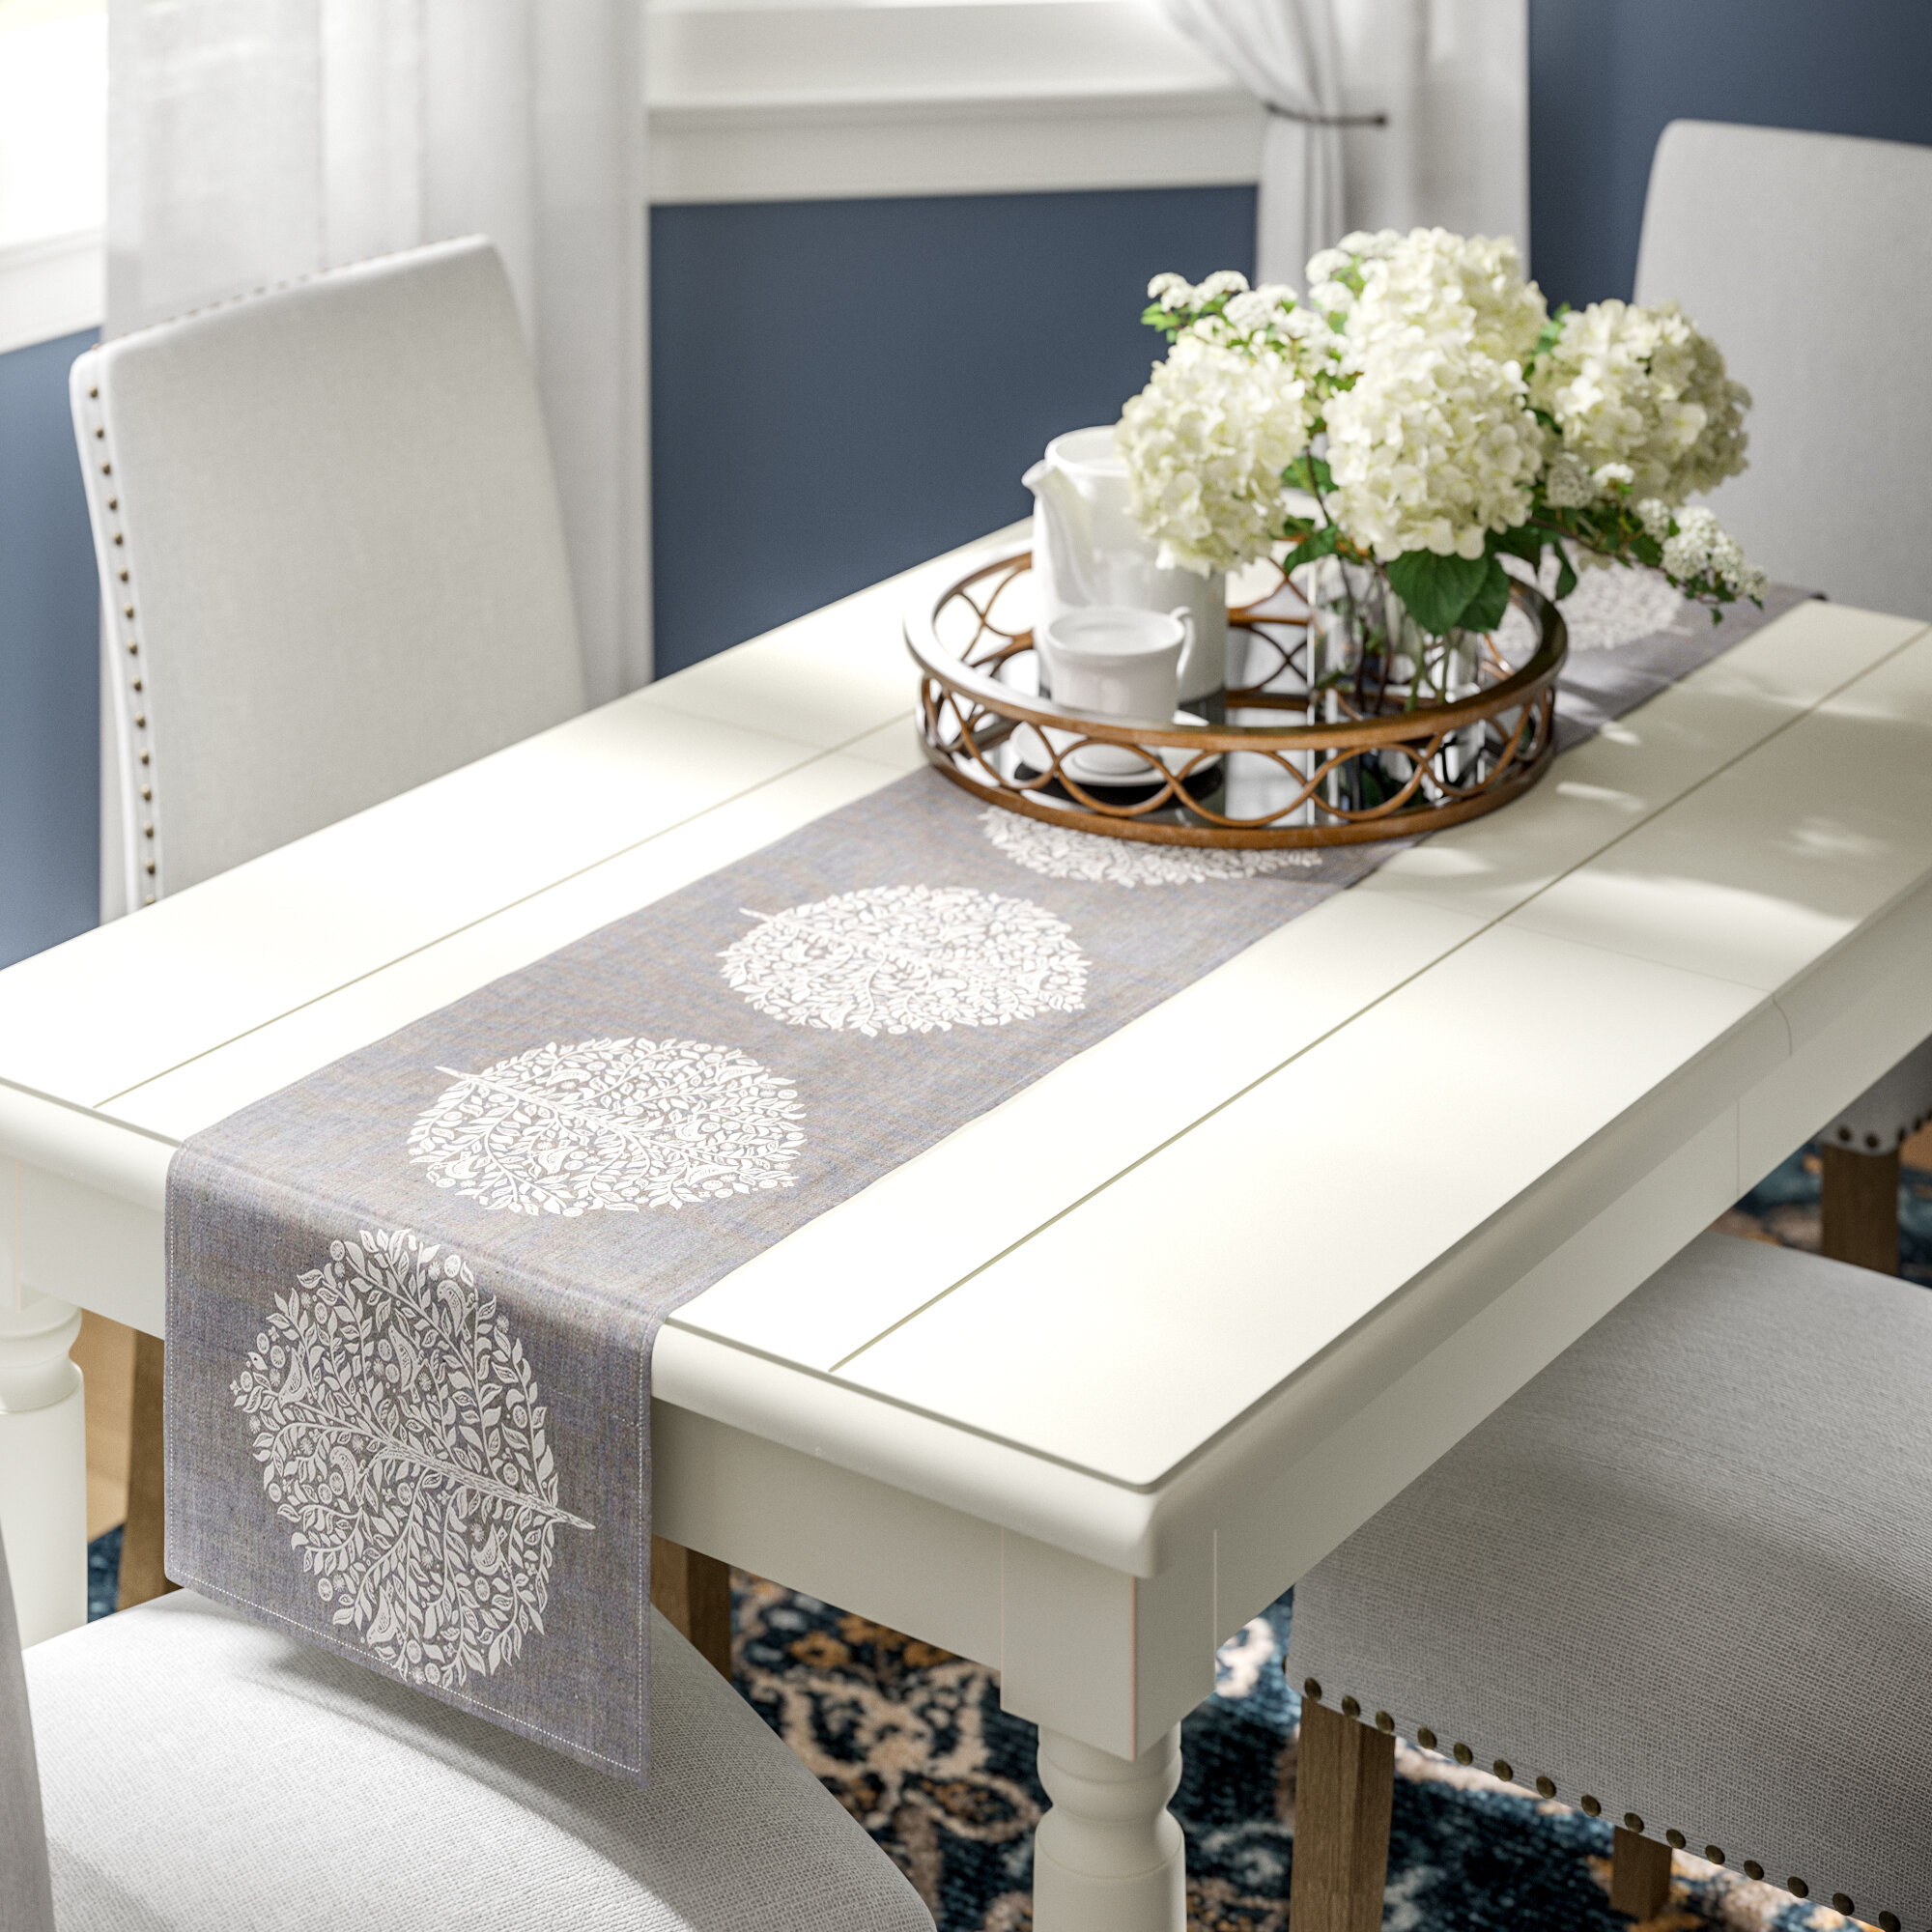 Coffee Table Runner Cheaper Than Retail Price Buy Clothing Accessories And Lifestyle Products For Women Men